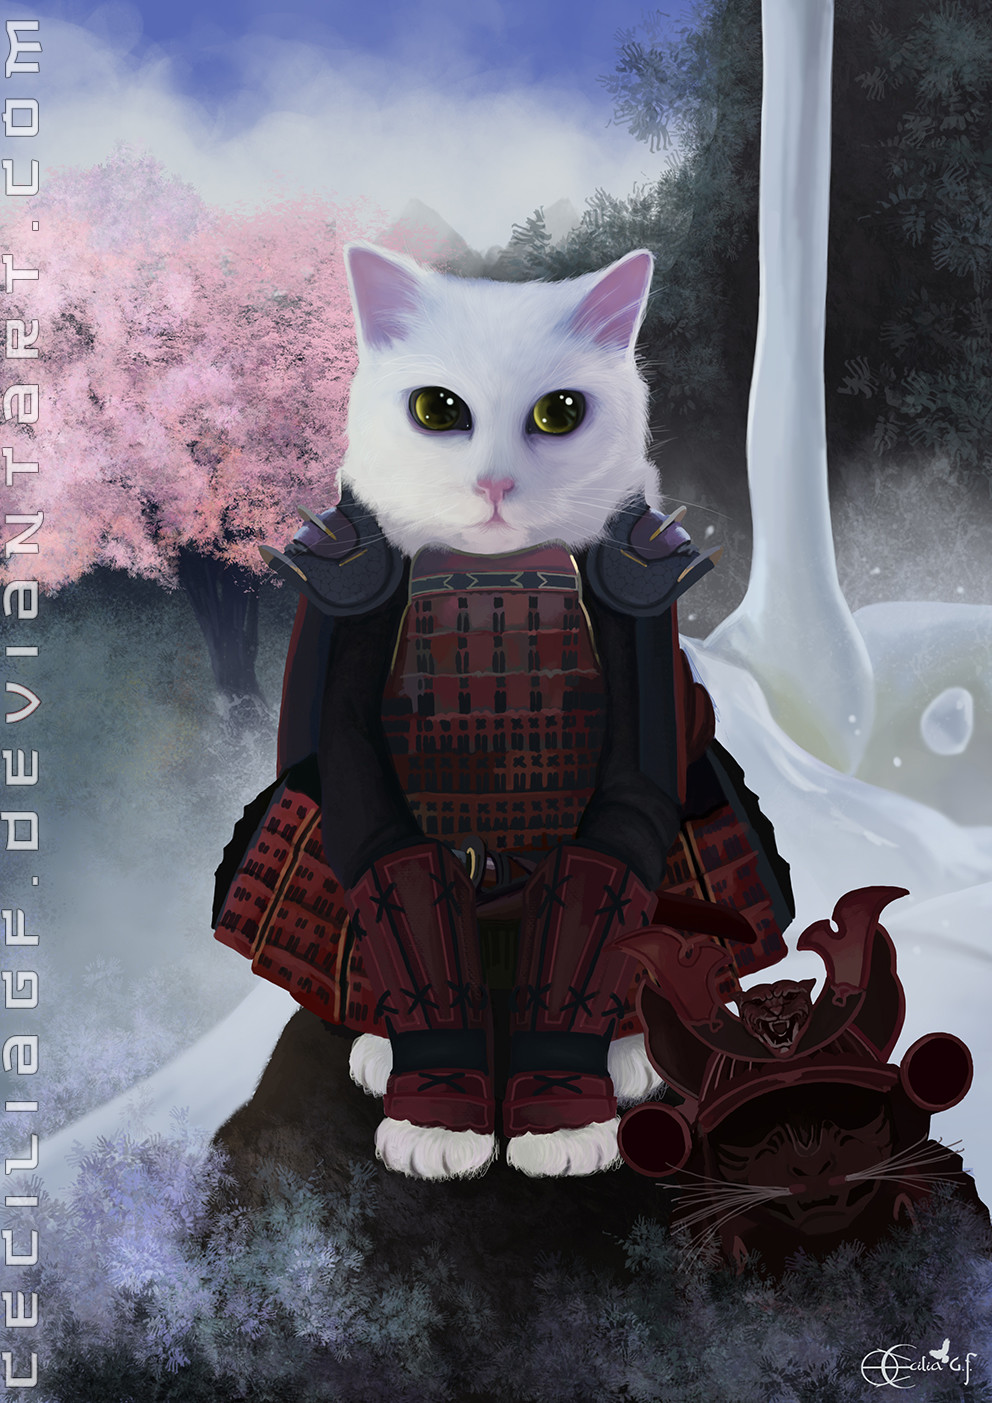 Commission - Sam, the Samurai cat